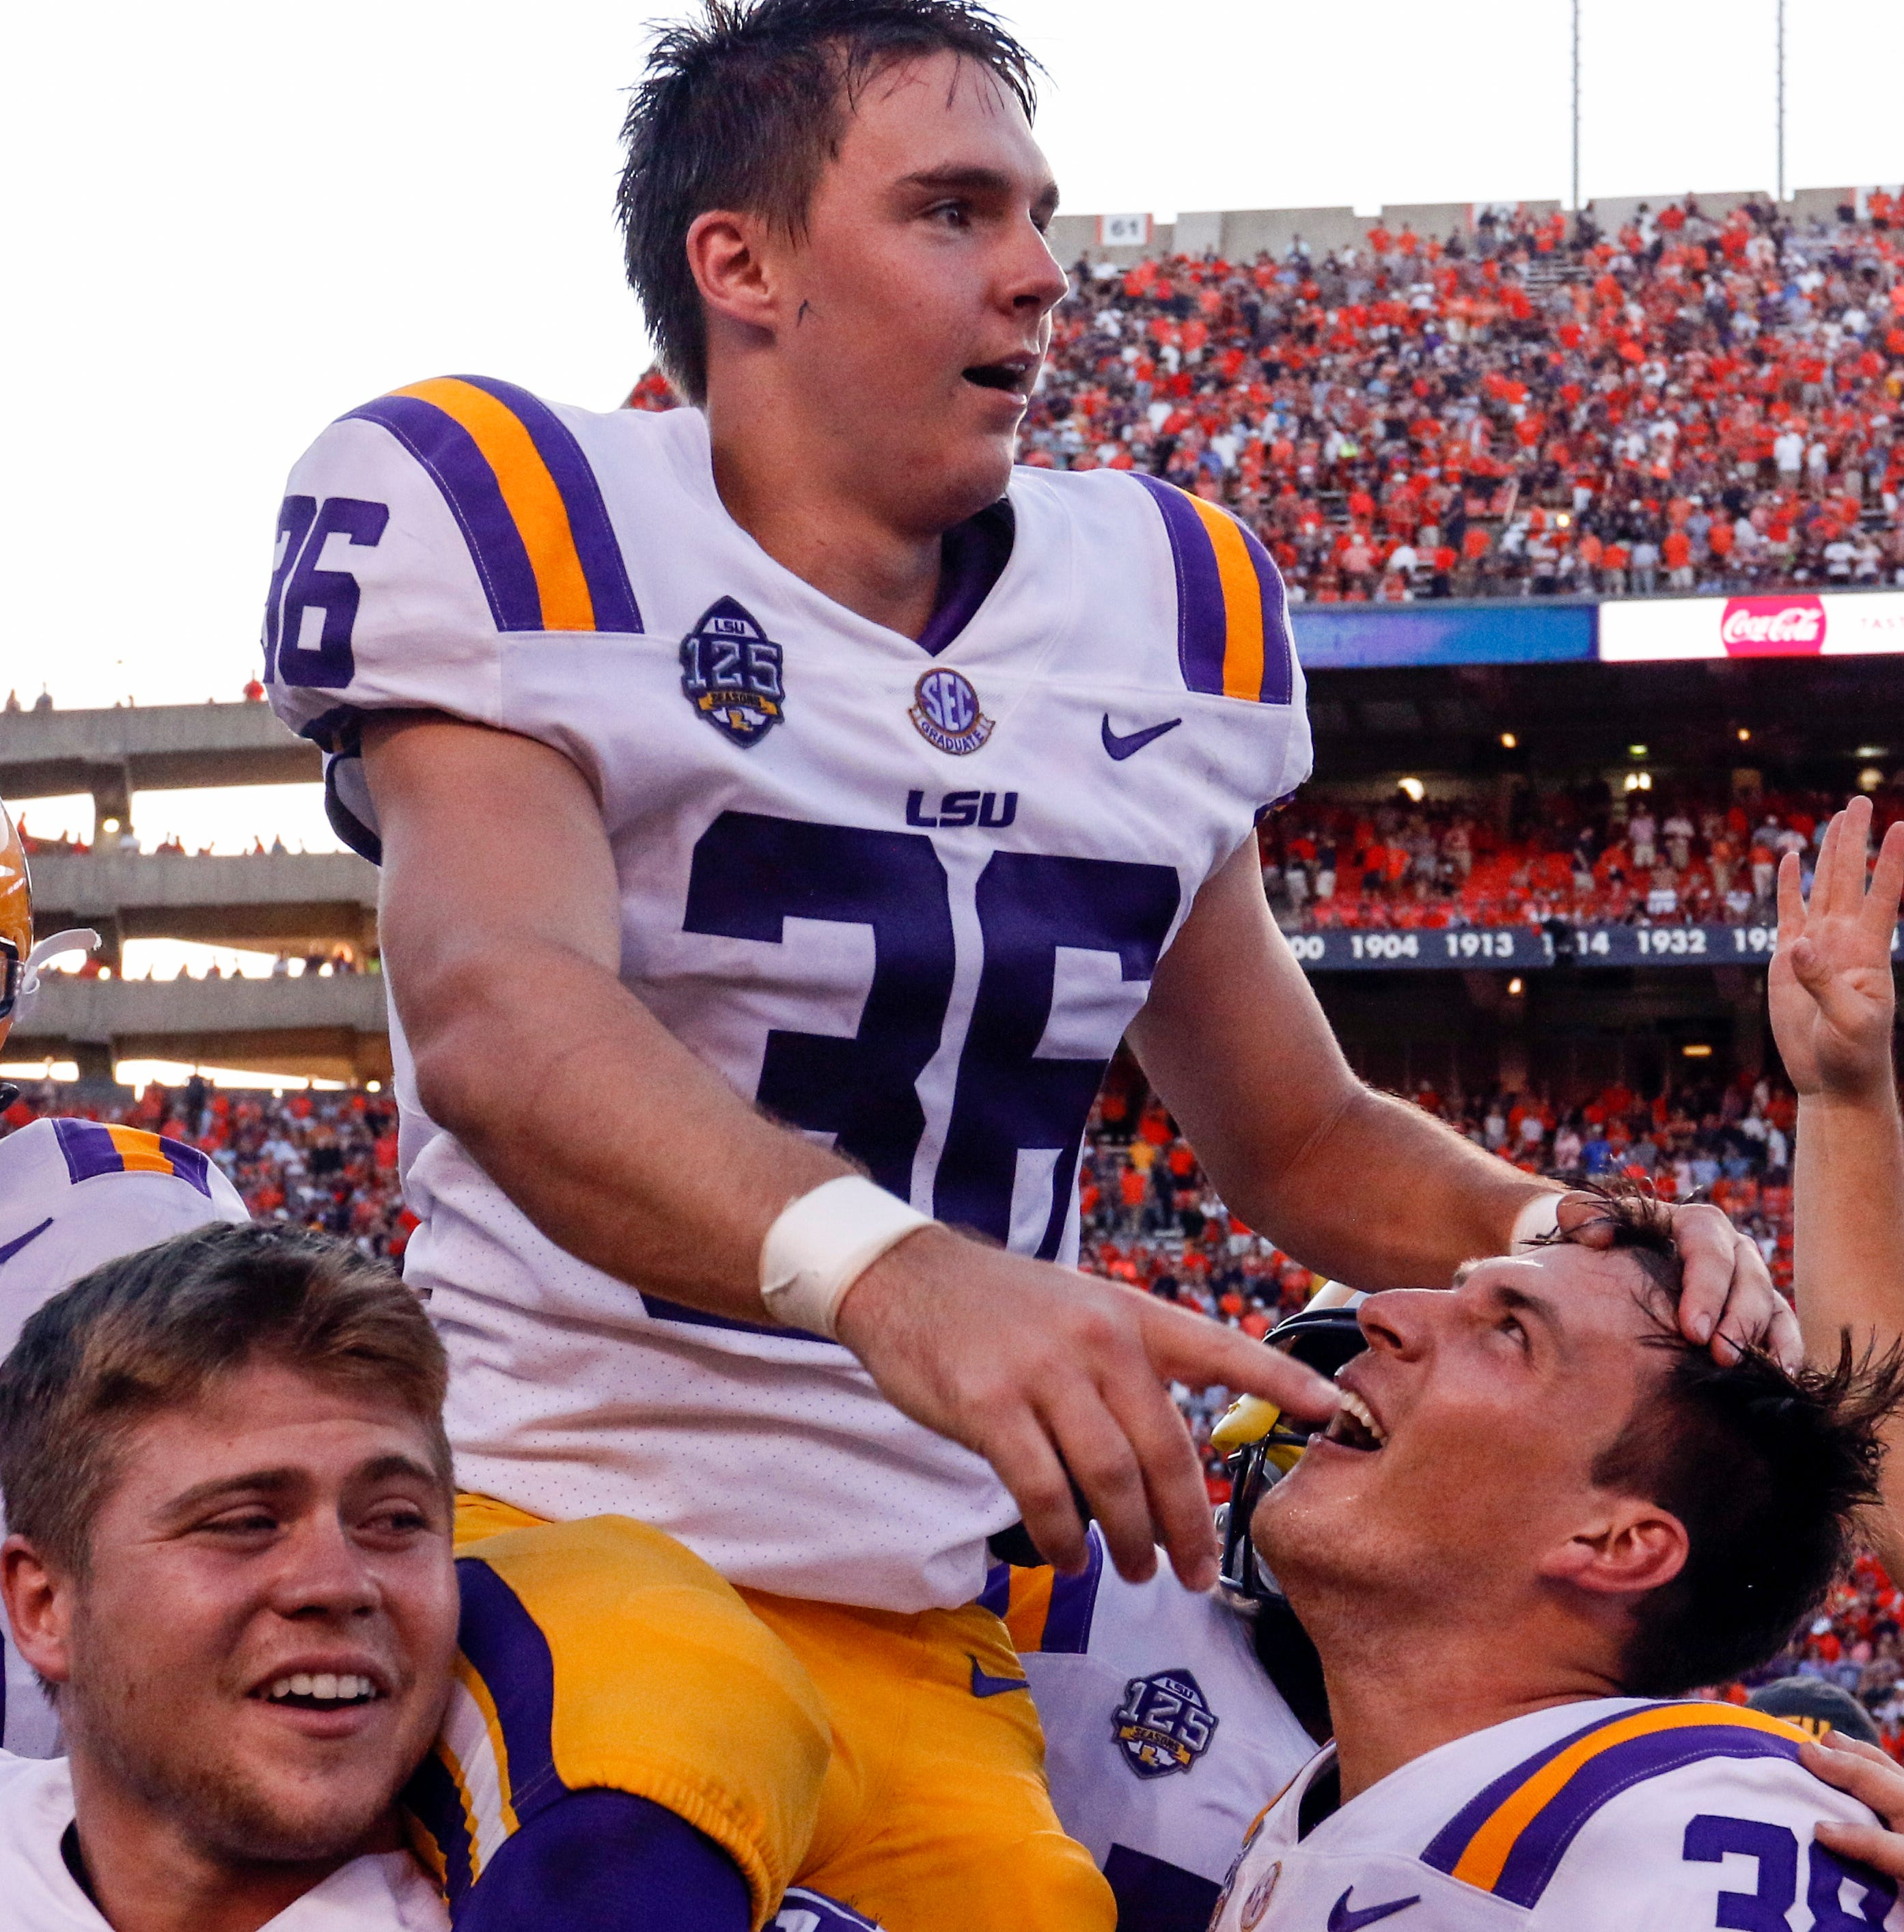 LOCAL CHATTER: Cole Tracy quickly becomes a Bayou legend already at LSU